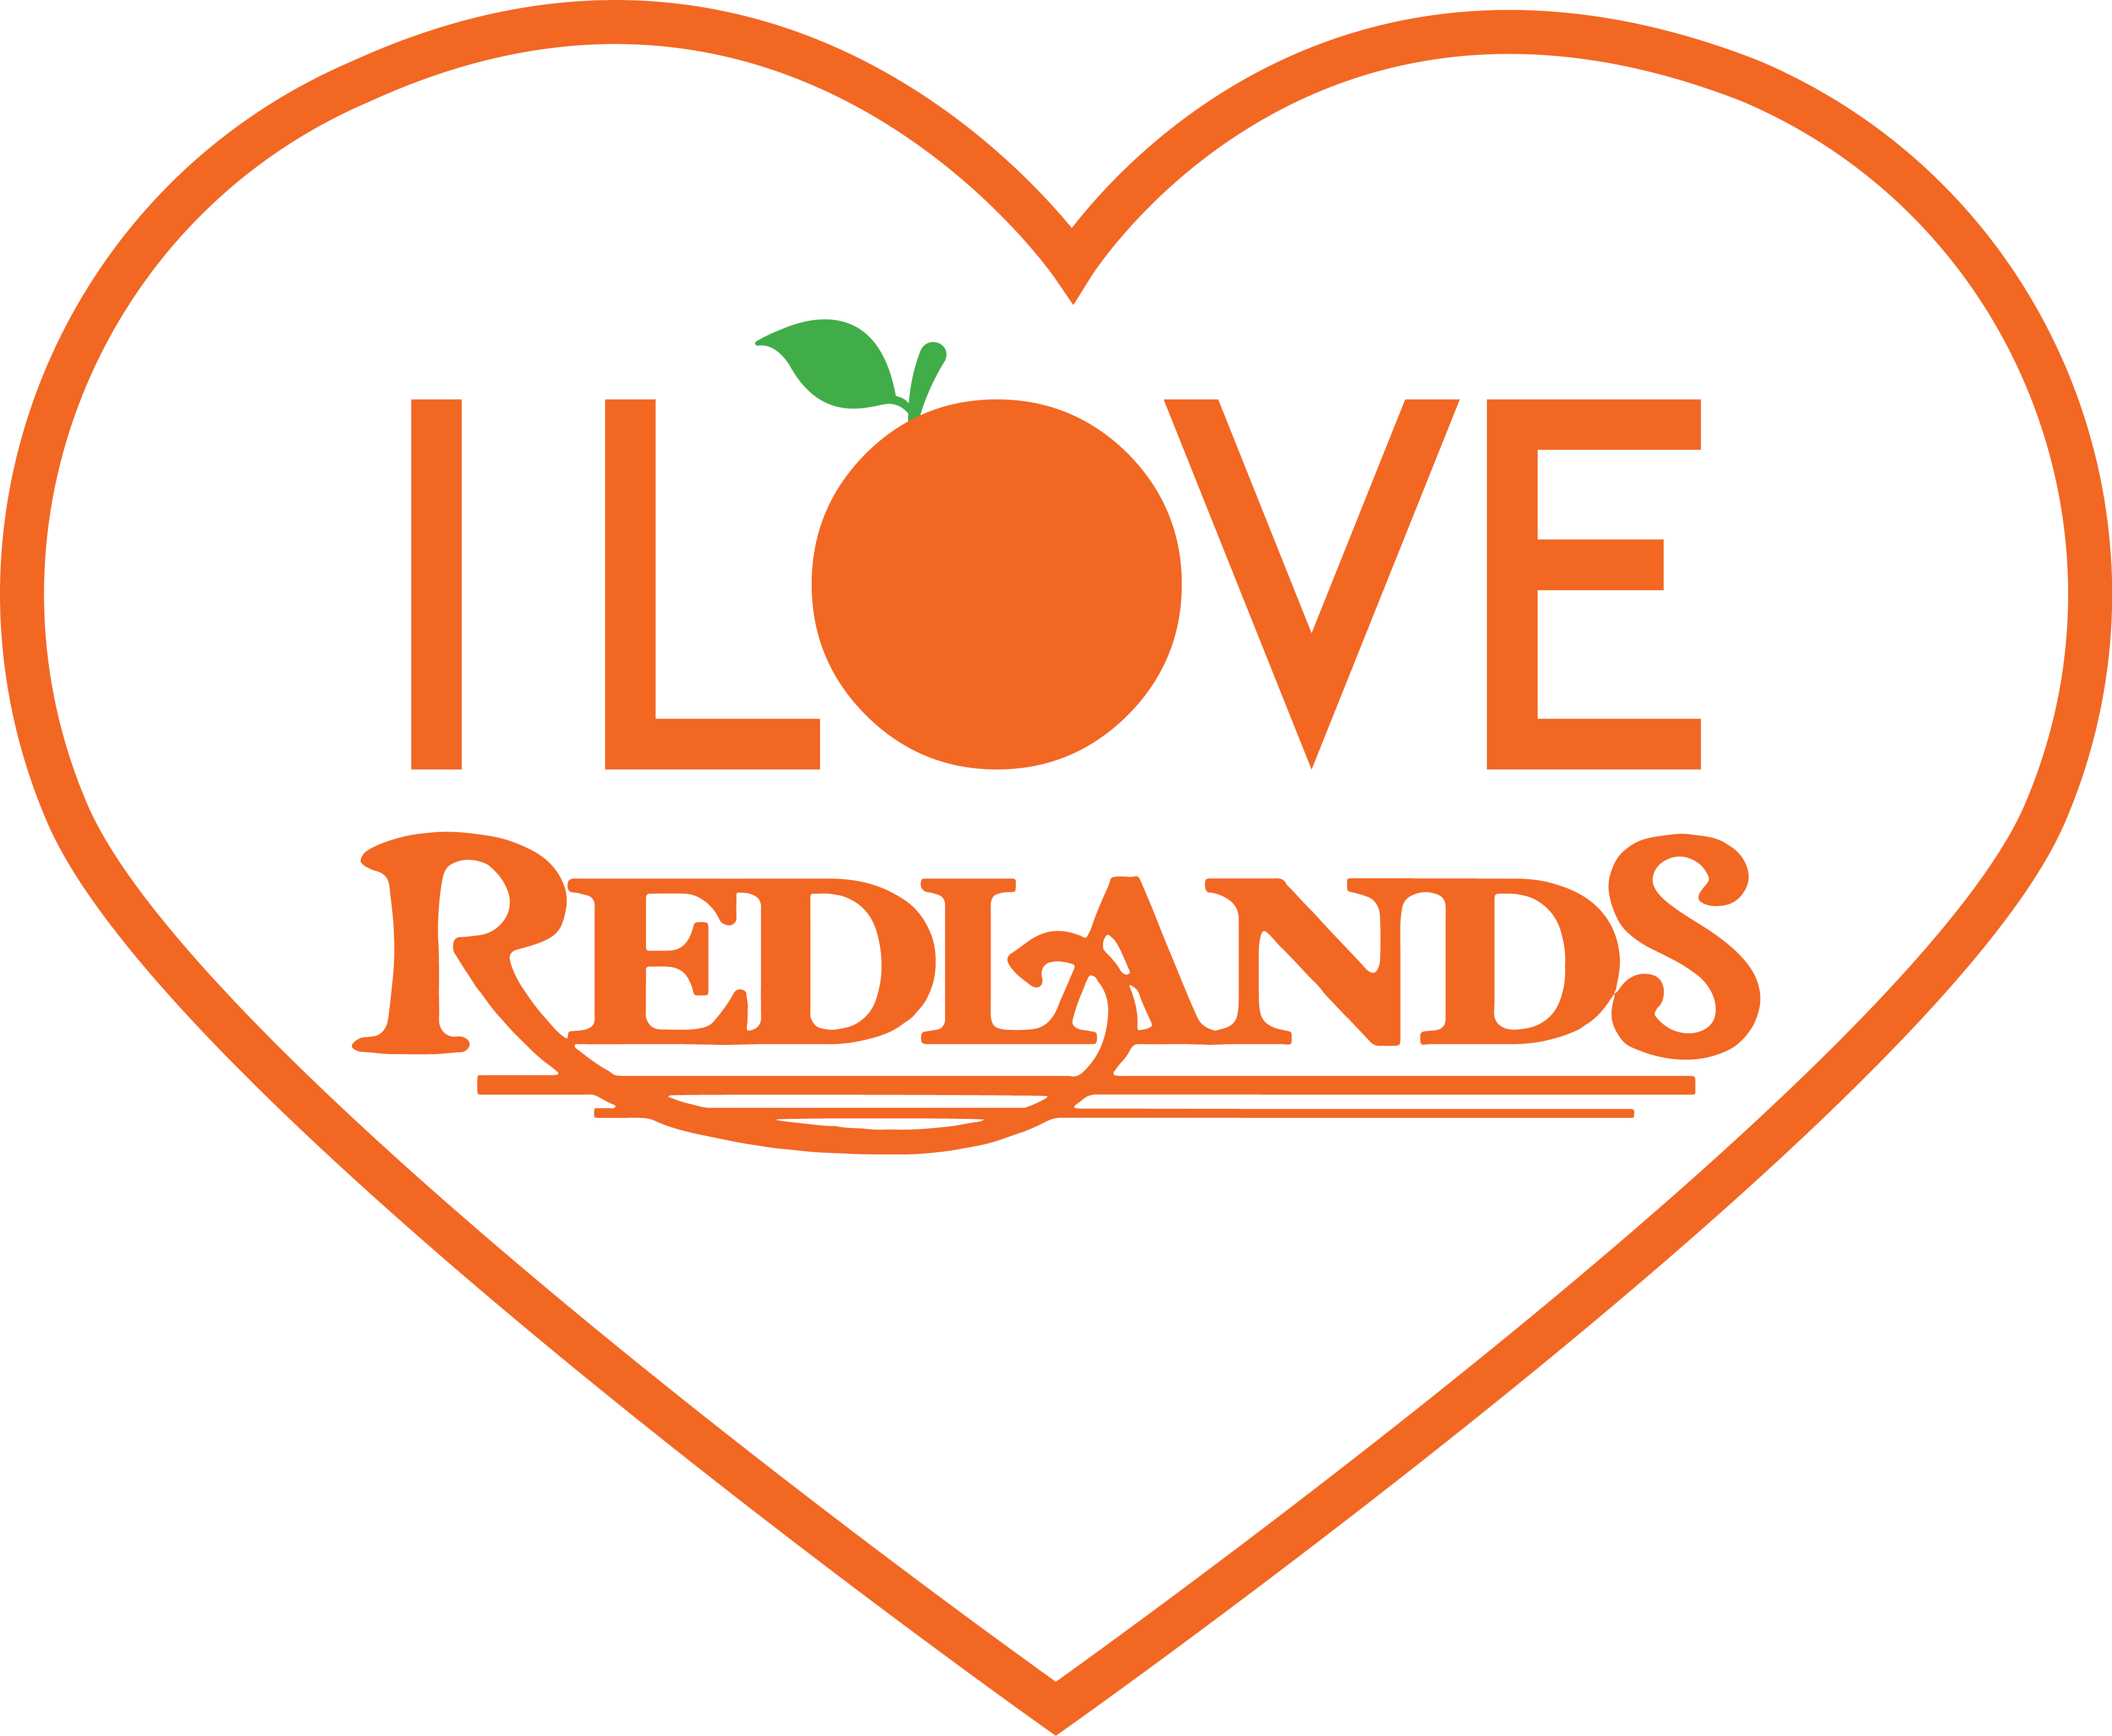 This is the logo seen on the Local REDLANDS Card.